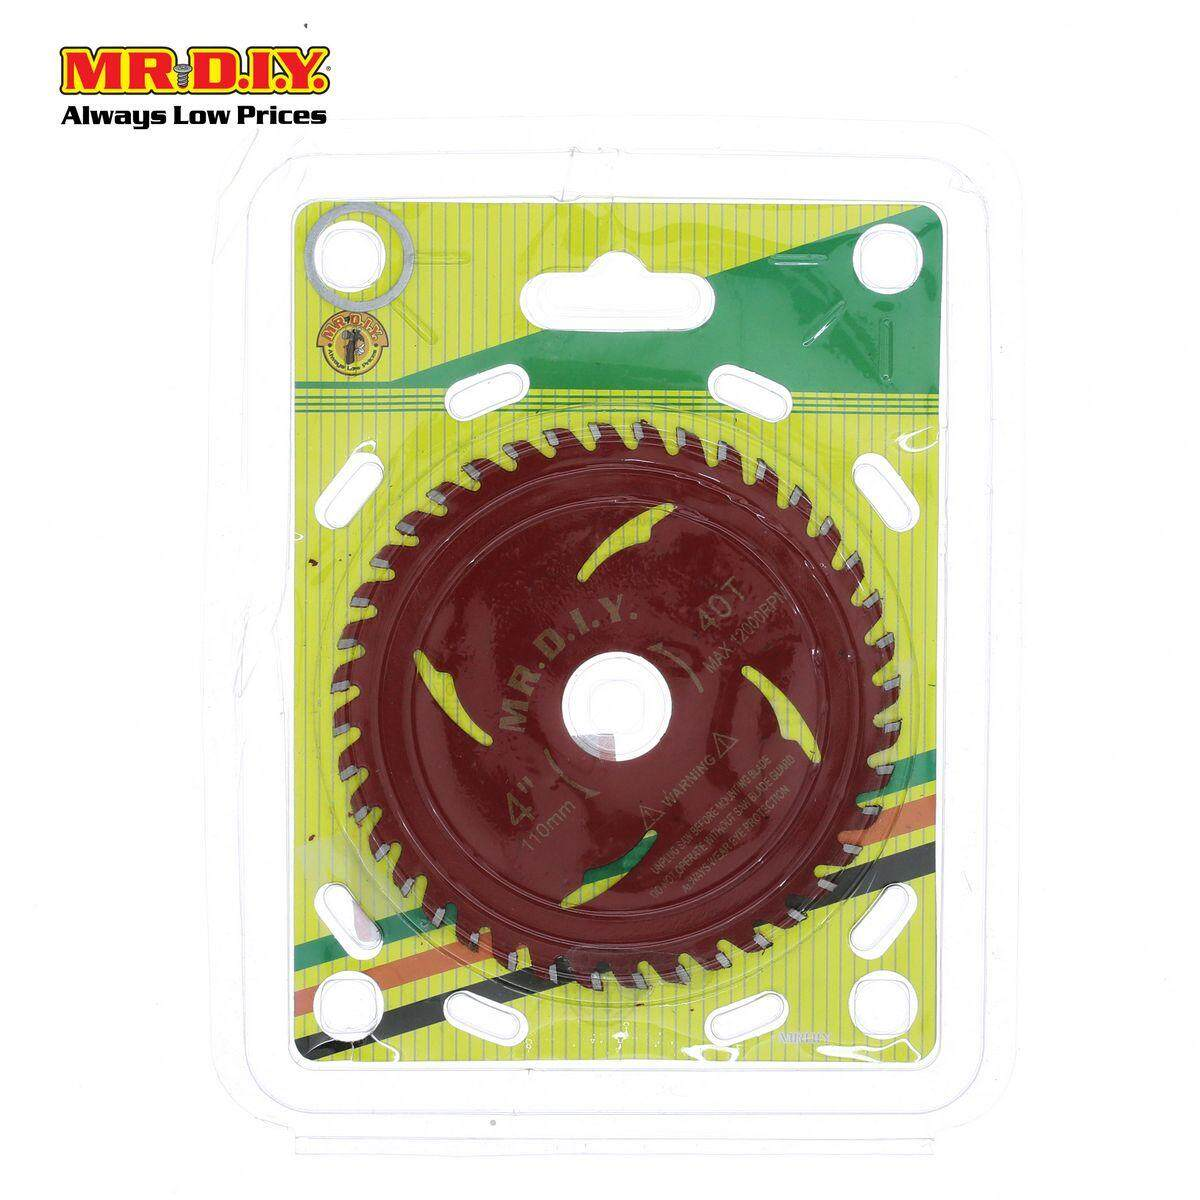 MR.DIY CIRCULAR SAW BLADE